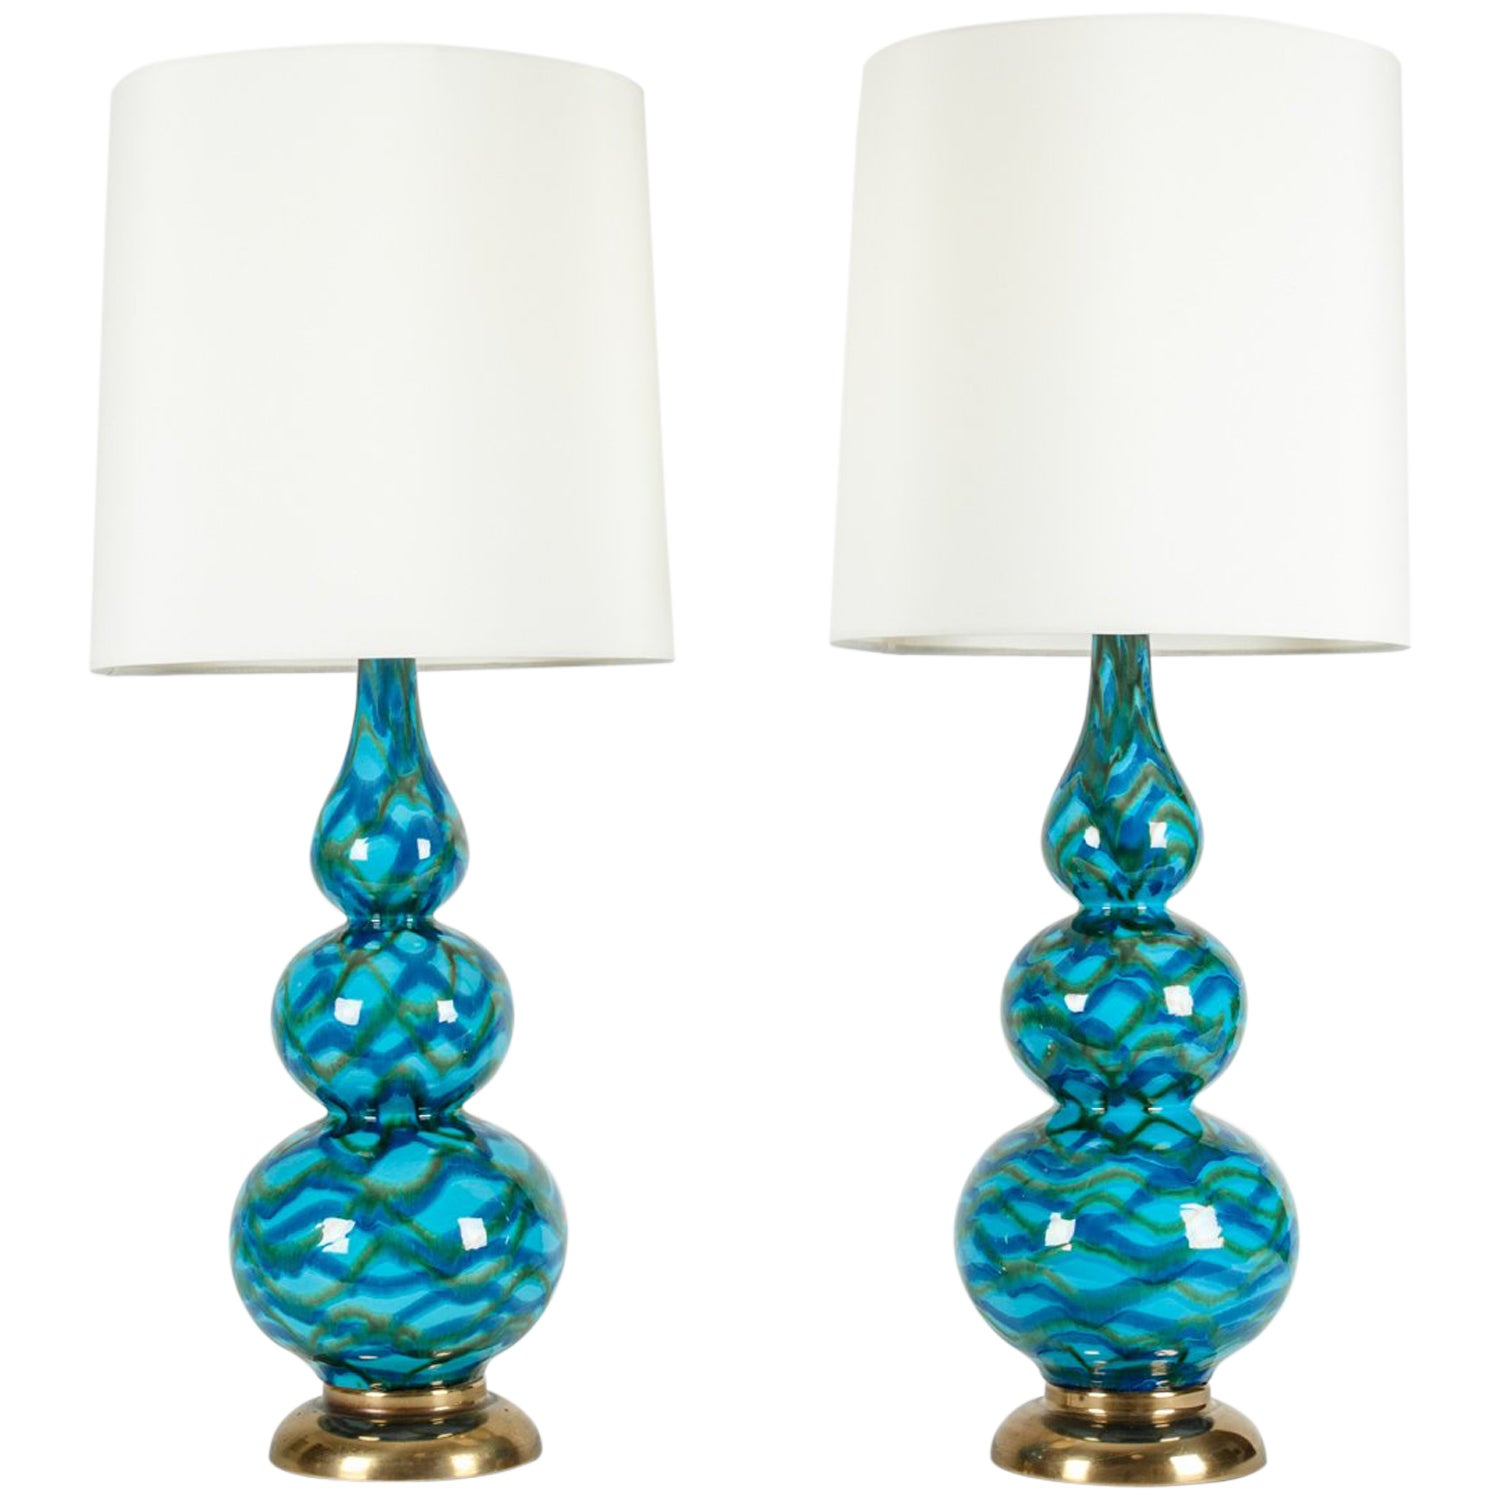 Vintage Porcelain Pair of Table Lamps with Brass Base